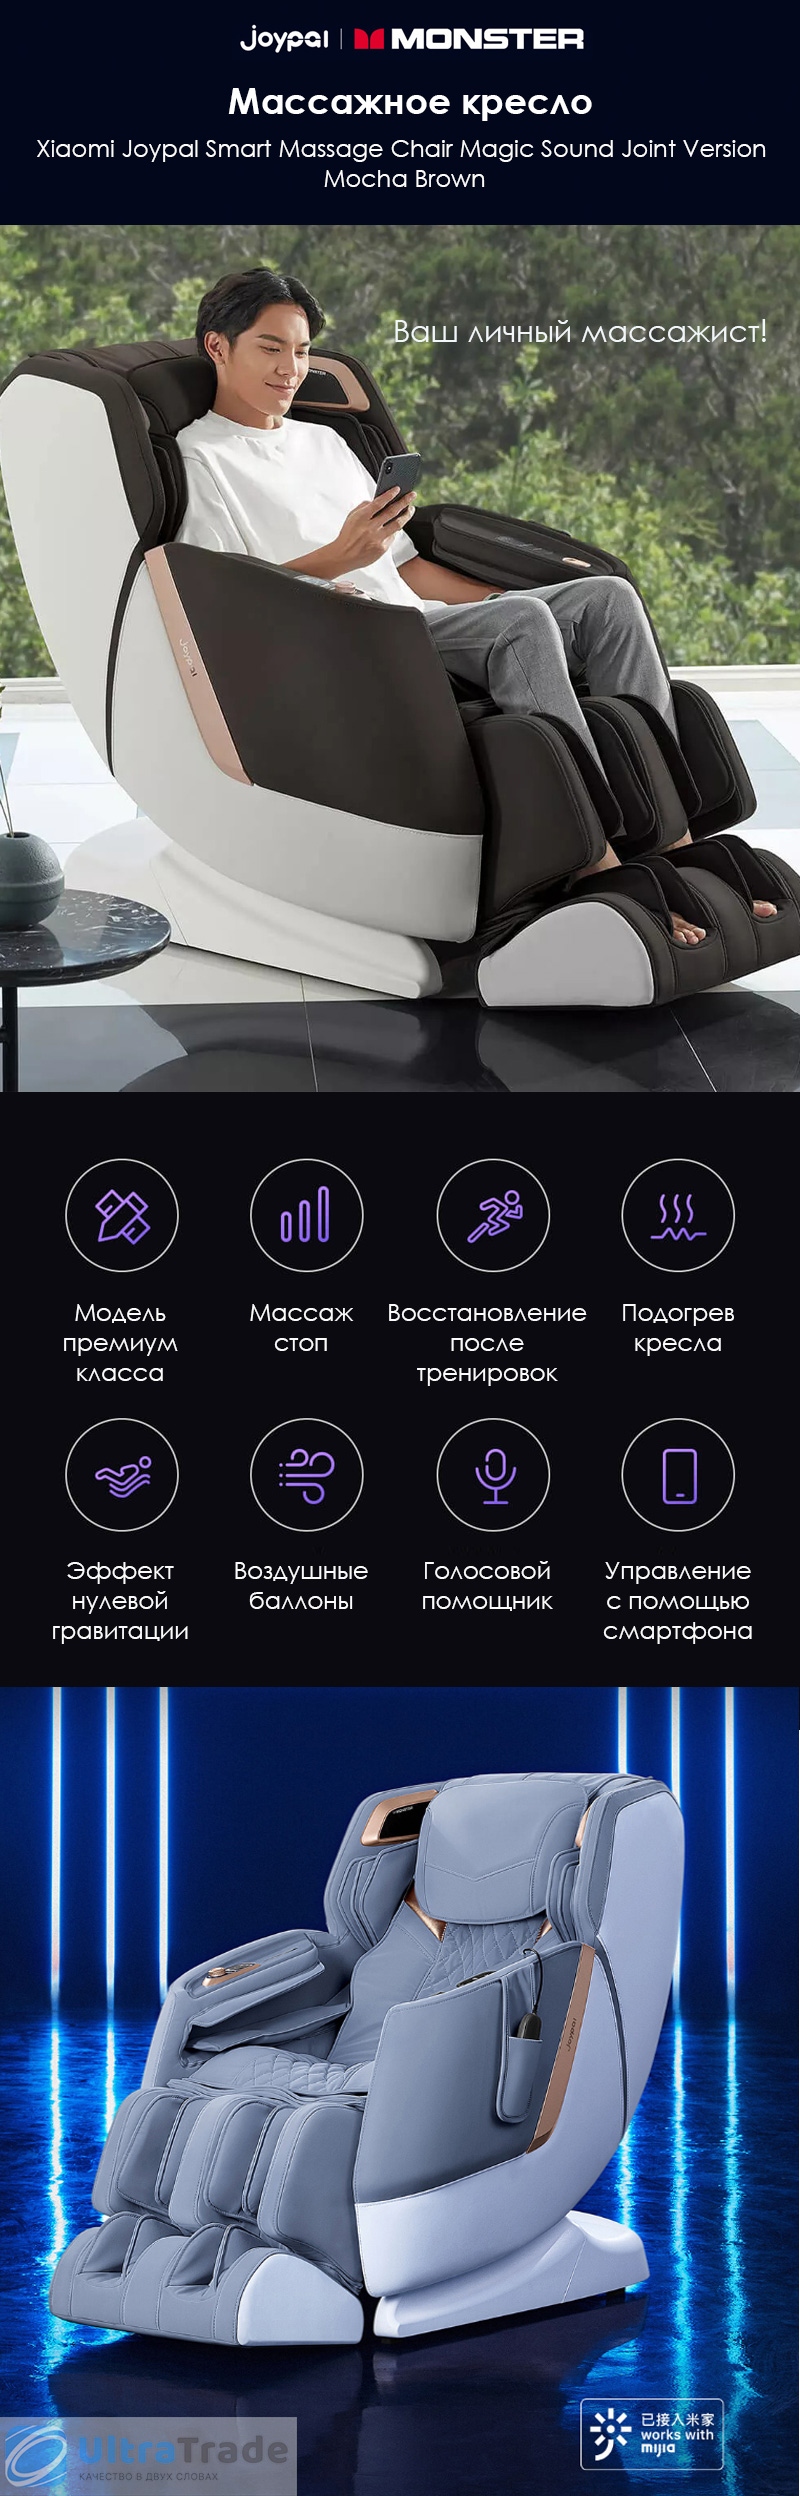 Массажное кресло Xiaomi Joypal Smart Massage Chair Magic Sound Joint Version Mocha Brown